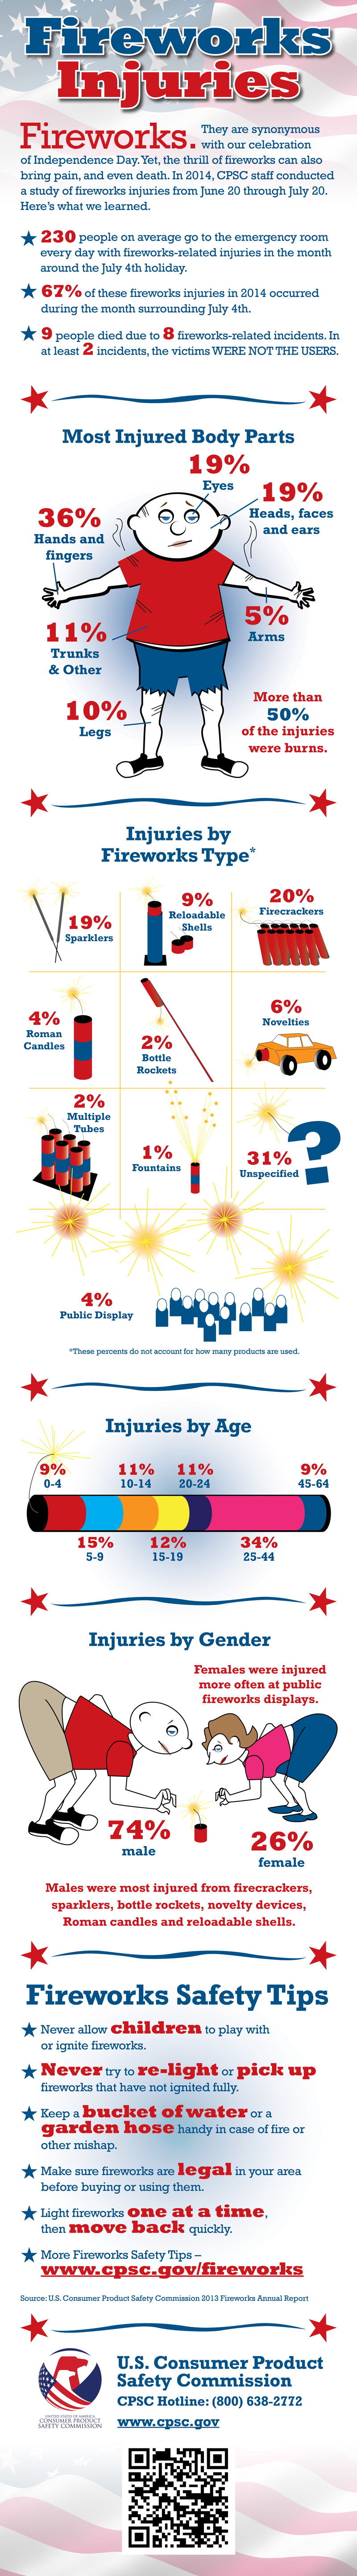 Fireworks Injuries 2015